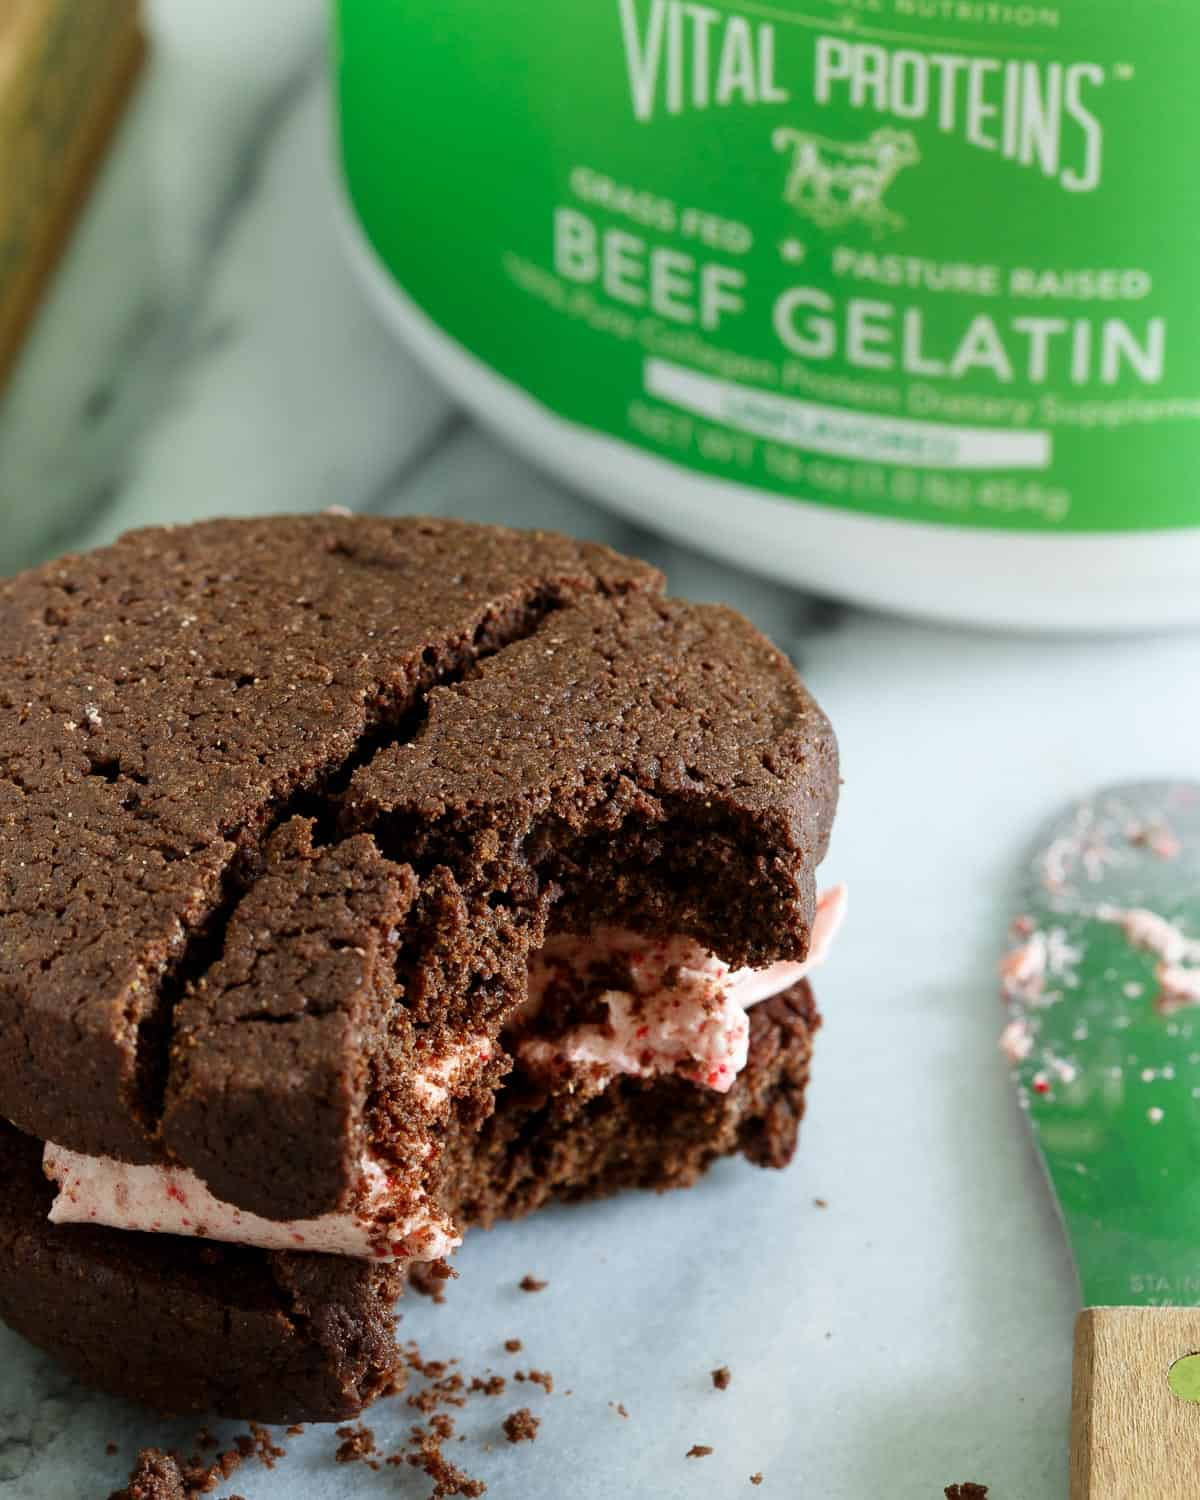 Strawberry Marshmallow Brownie Sandwich Cookies made with Vital Proteins grass fed and pasture raised gelatin are a delicious spring treat.